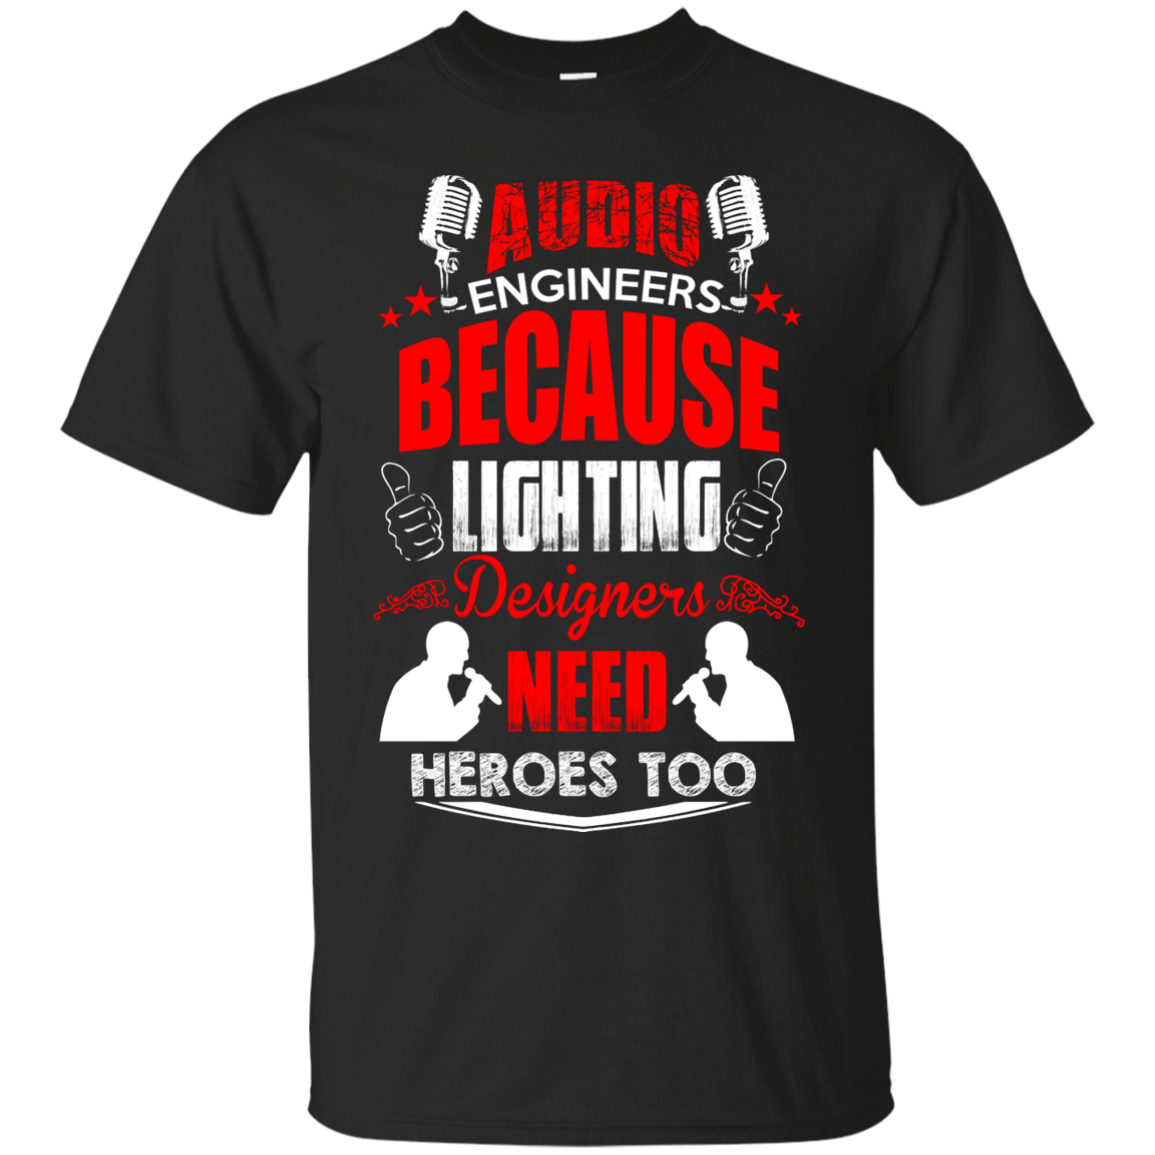 Audio Engineers Because Lighting Designers Need Heroes Too T-Shirt & Hoodie